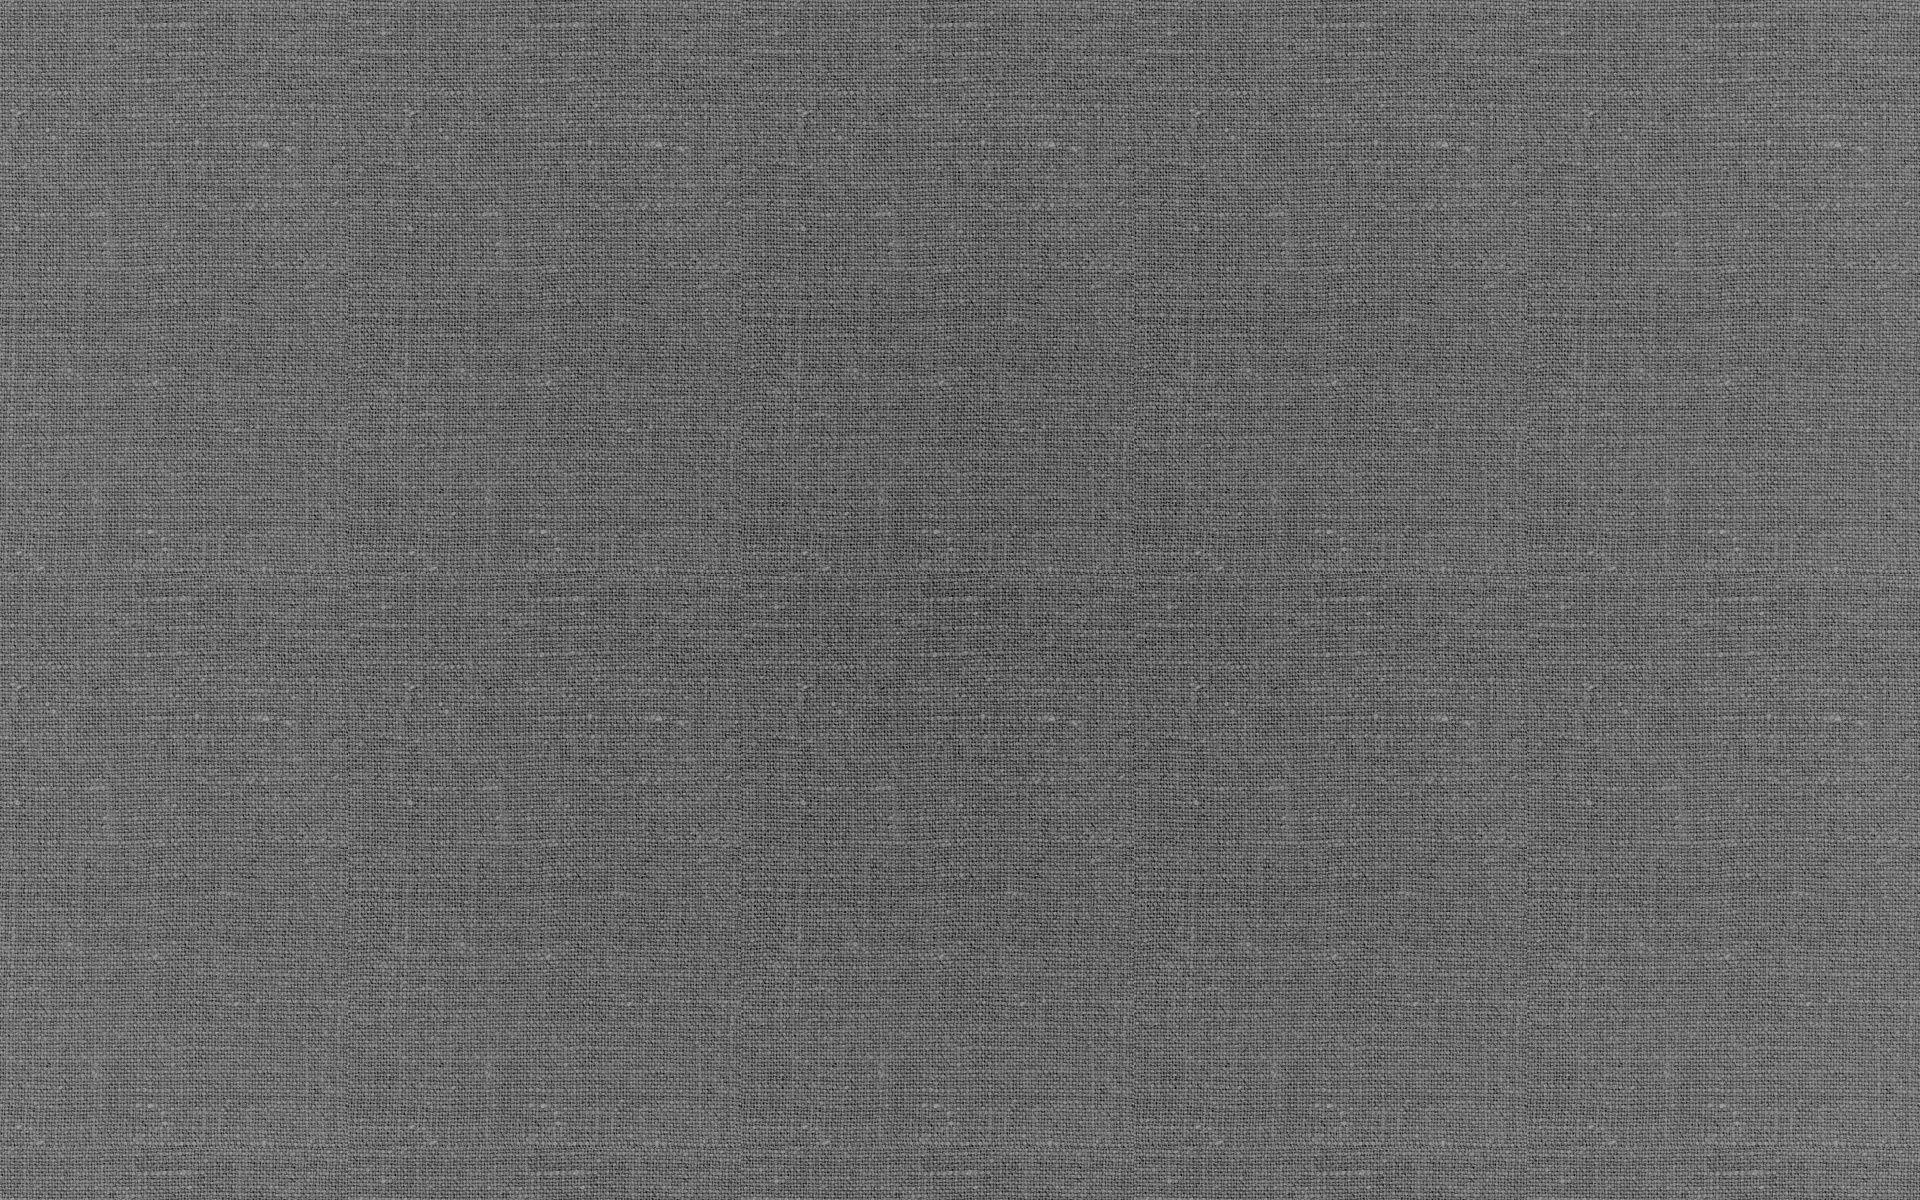 Fabric texture | Assets, Textures and Patterns | Pinterest | Fabric textures, Hd wallpaper and ...